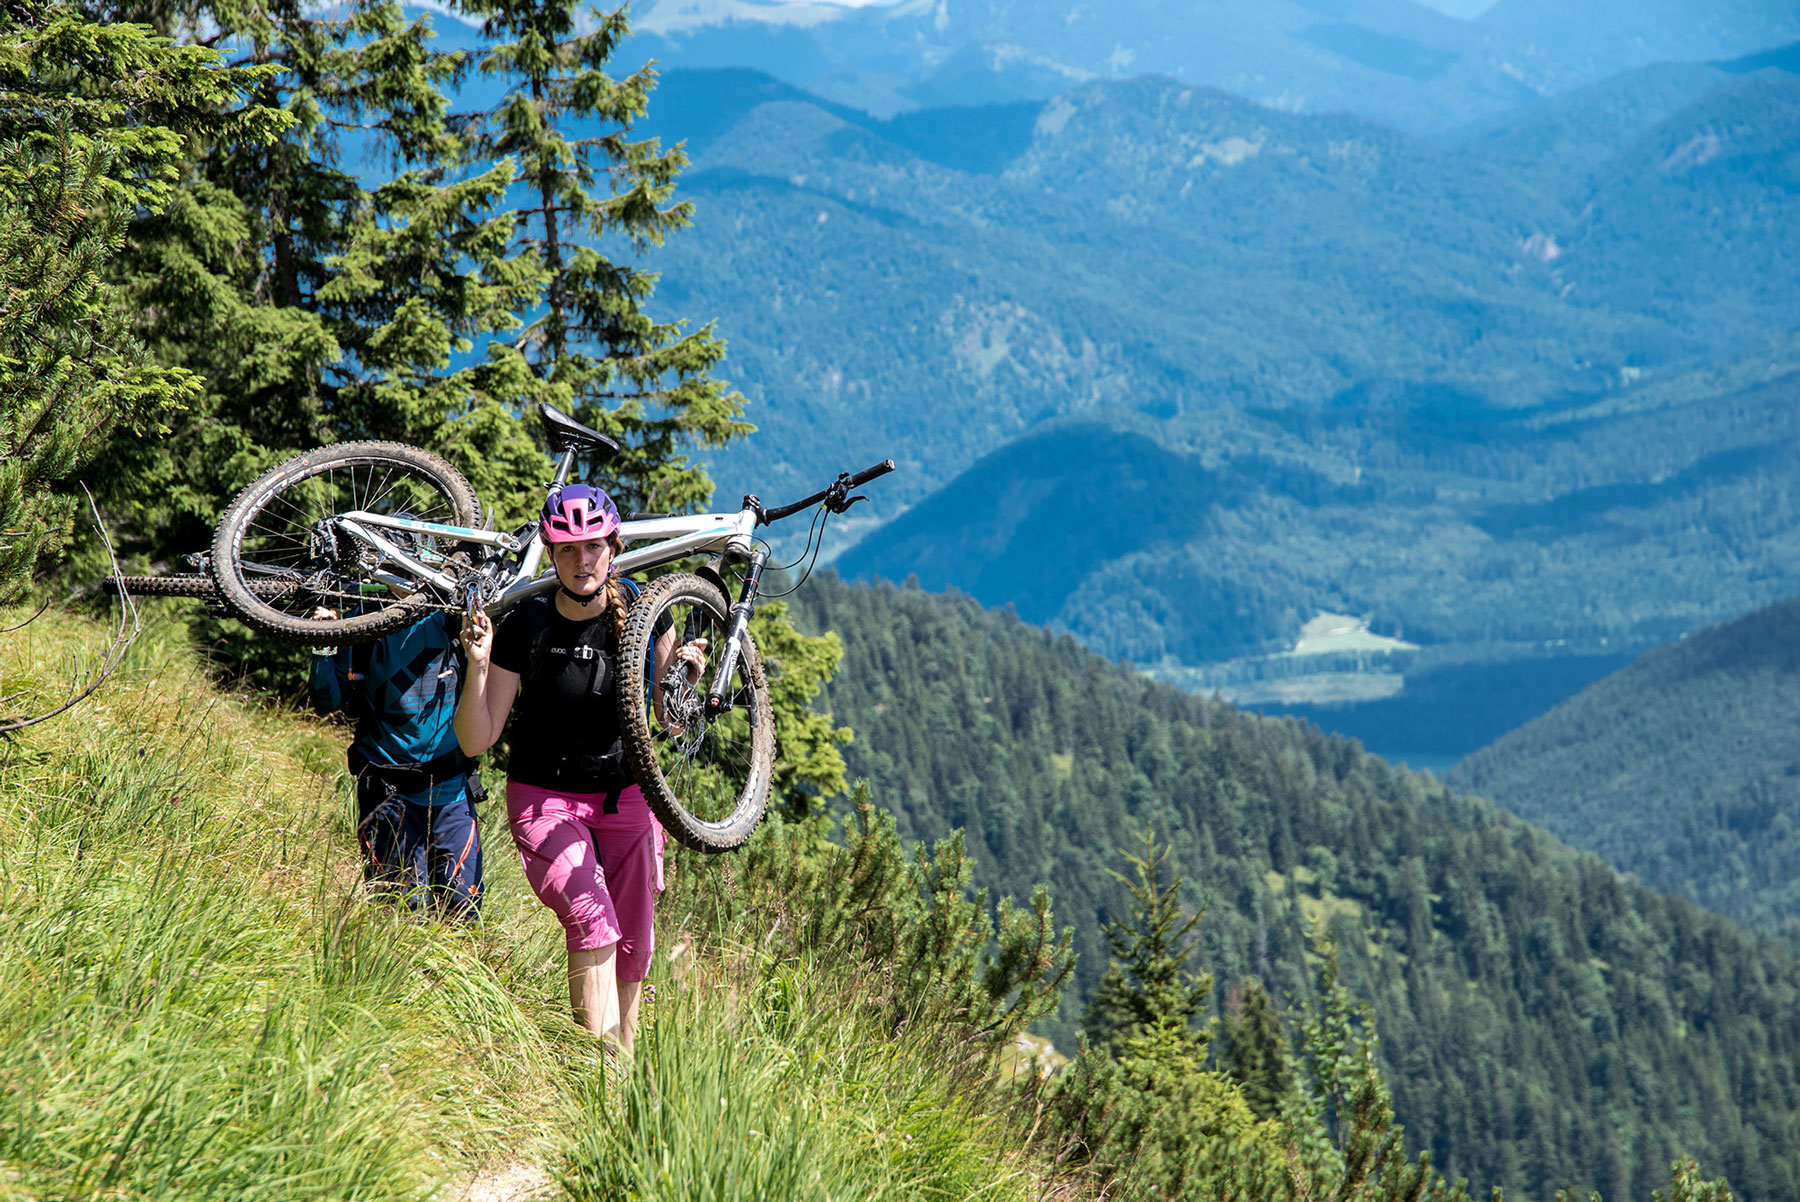 lisa-amenda-munichmountaingirls-Mountainbiken-mtb-tragen-tragepassage-Tassilo-Pritzl